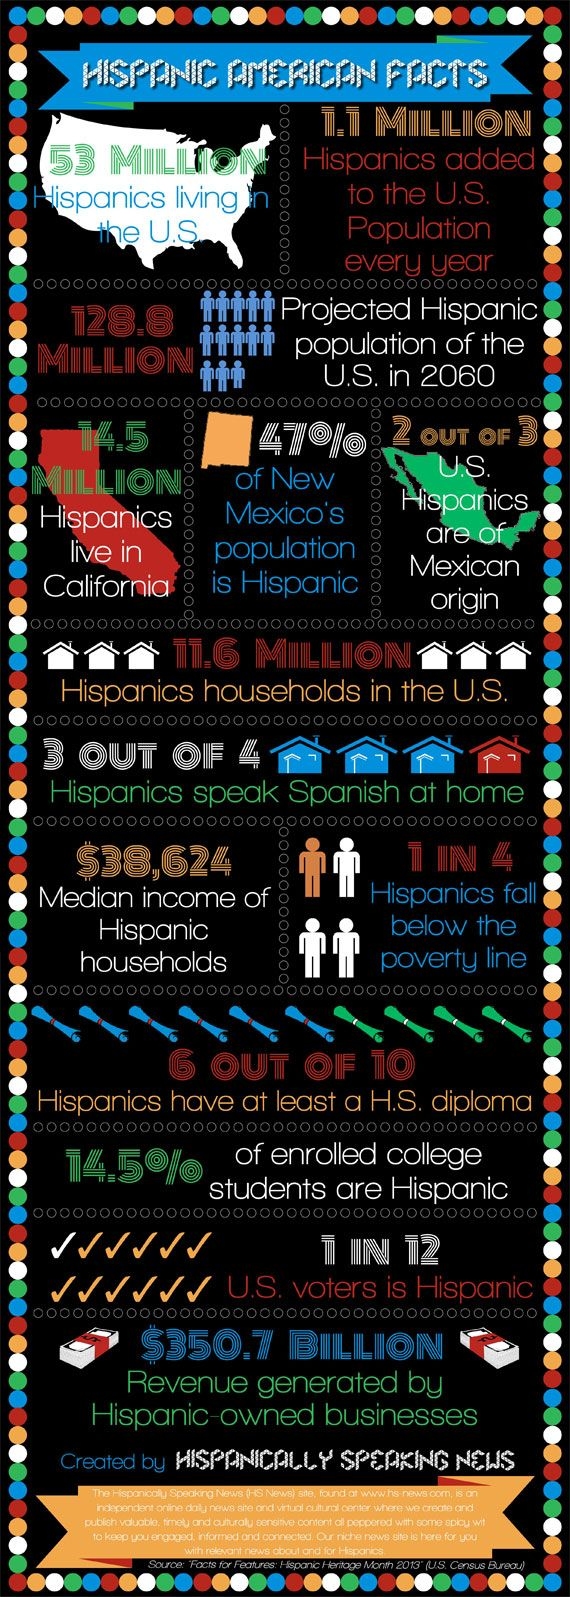 """Hispanic Heritage Month is celebrated every year from the 15th of September to the 15th of October.  The U.S. Census Bureau released a """"Facts for Features"""" celebrating the culture and traditions of those whose origins are rooted in Spain, Central America, and South America."""